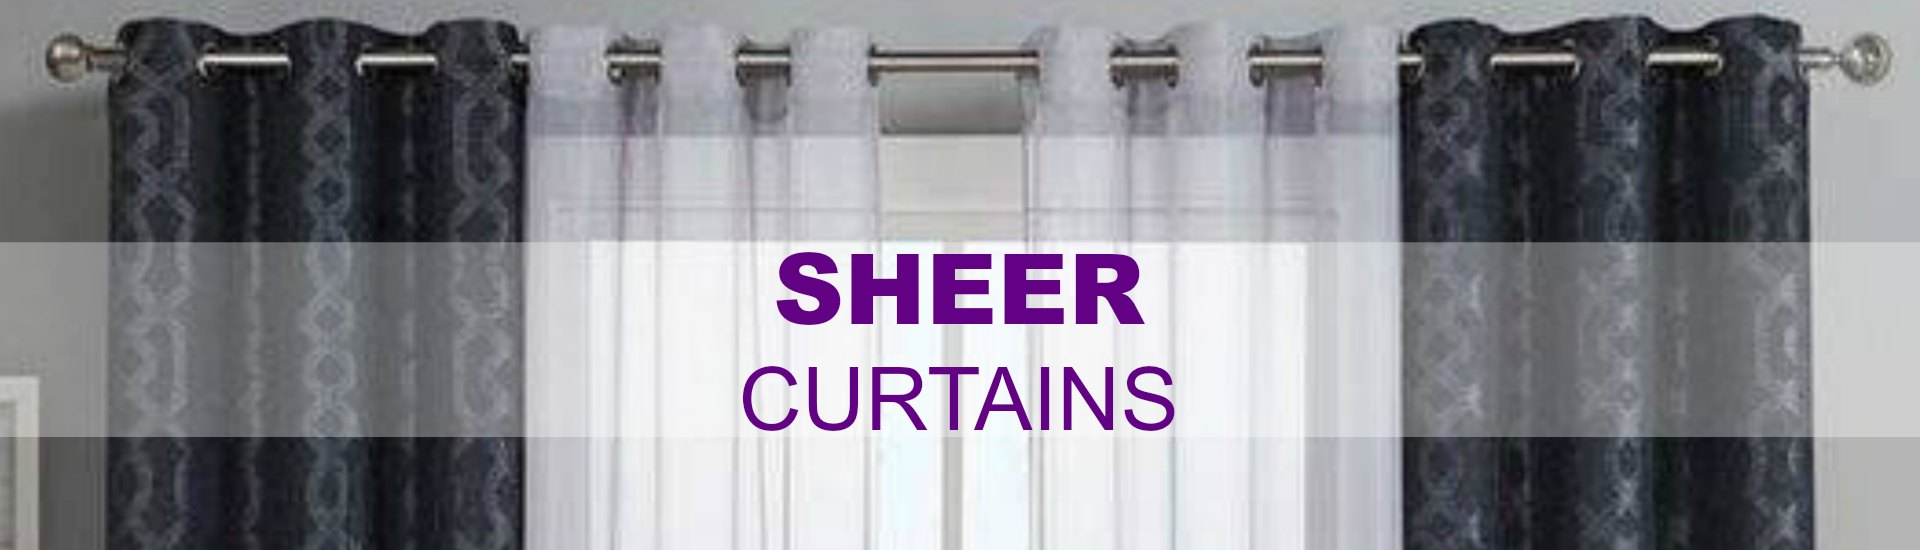 Sheer curtains offer privacy and comfort